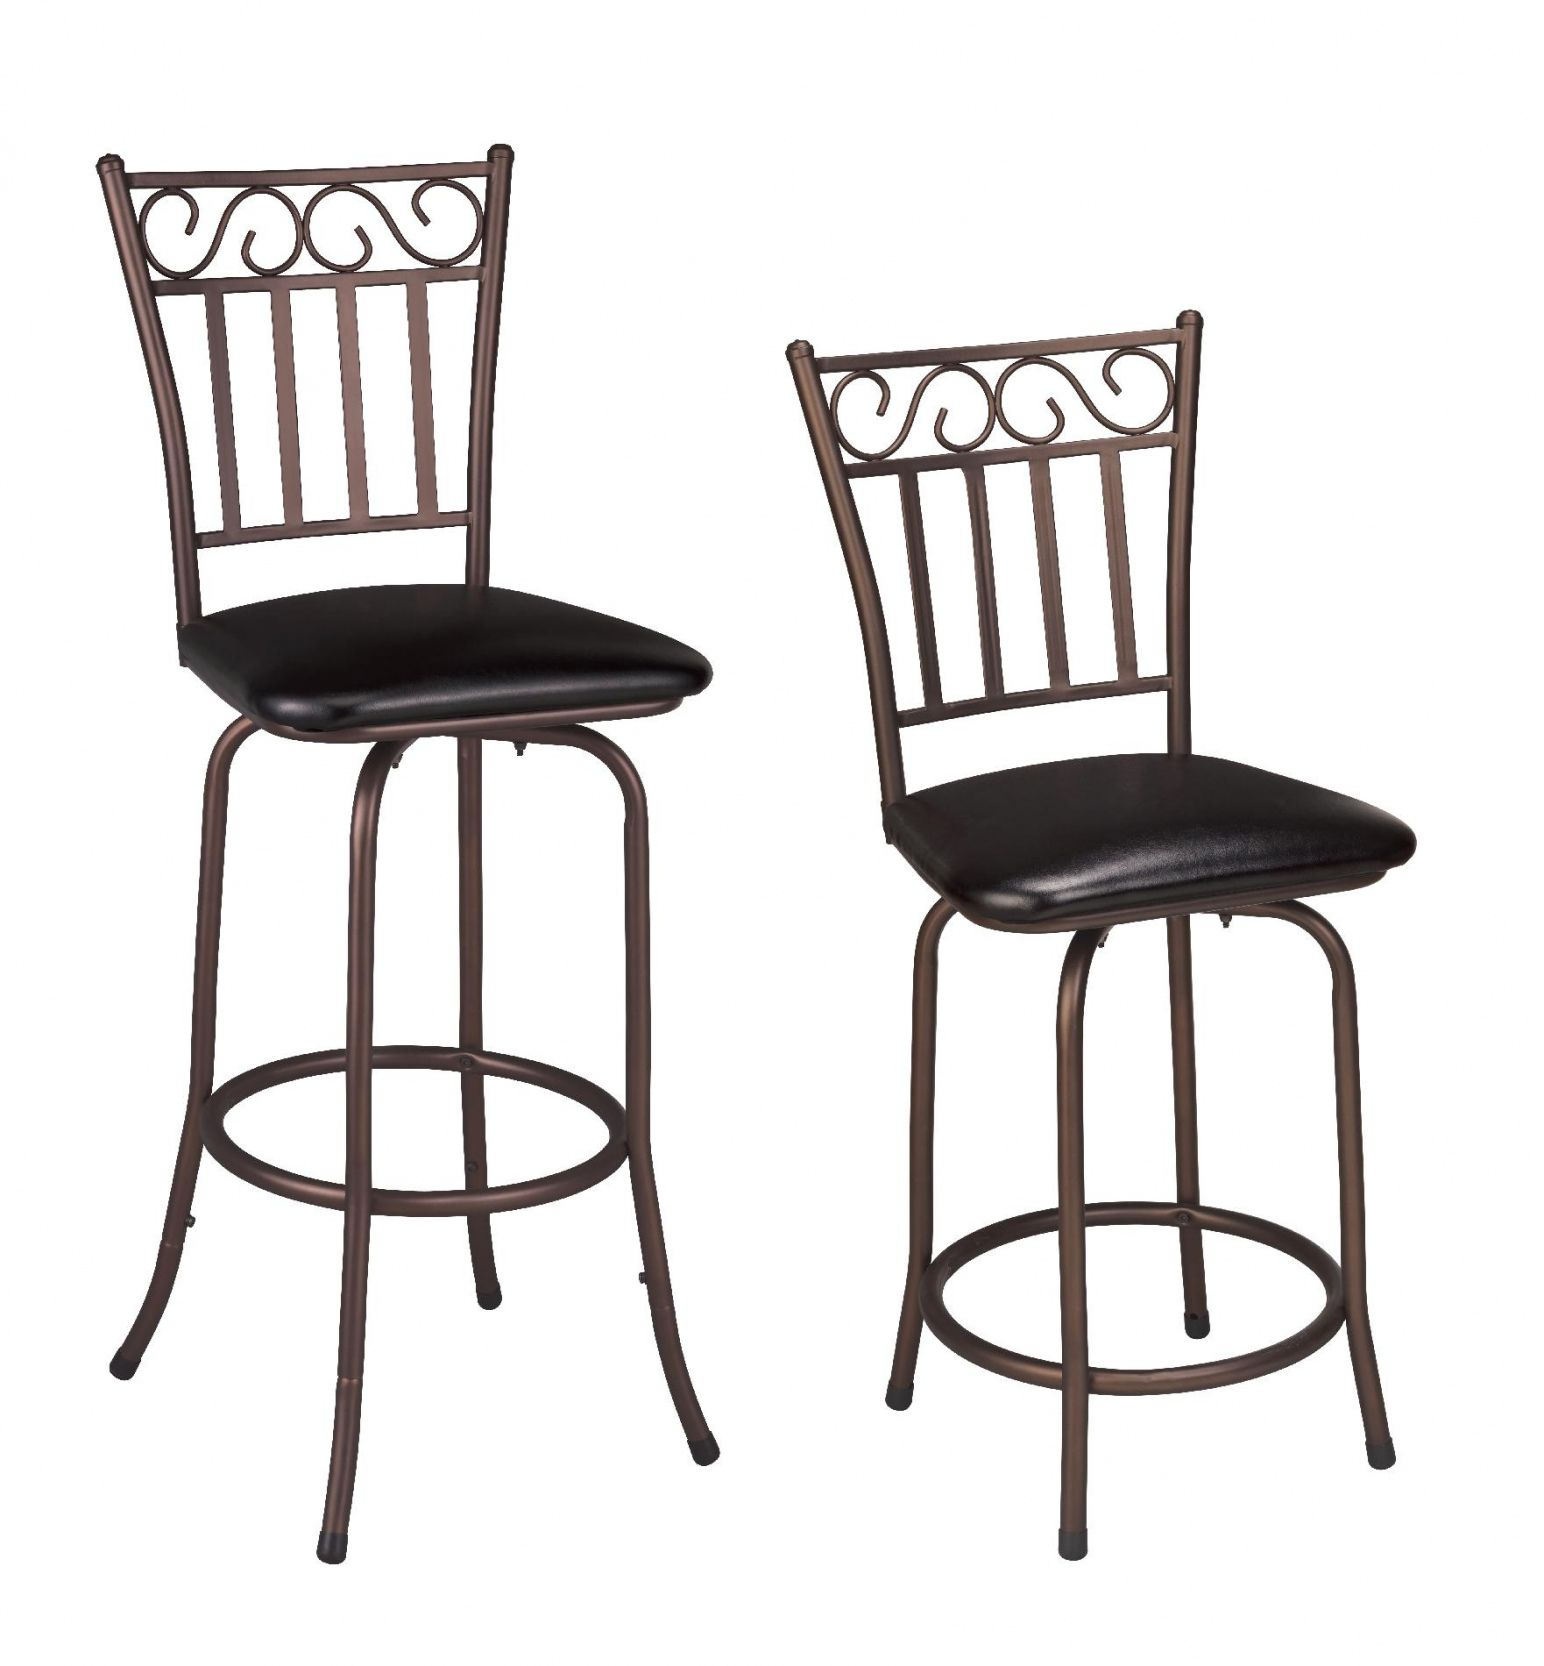 2018 Bar Stool Clearance Modern Used Furniture Check more at